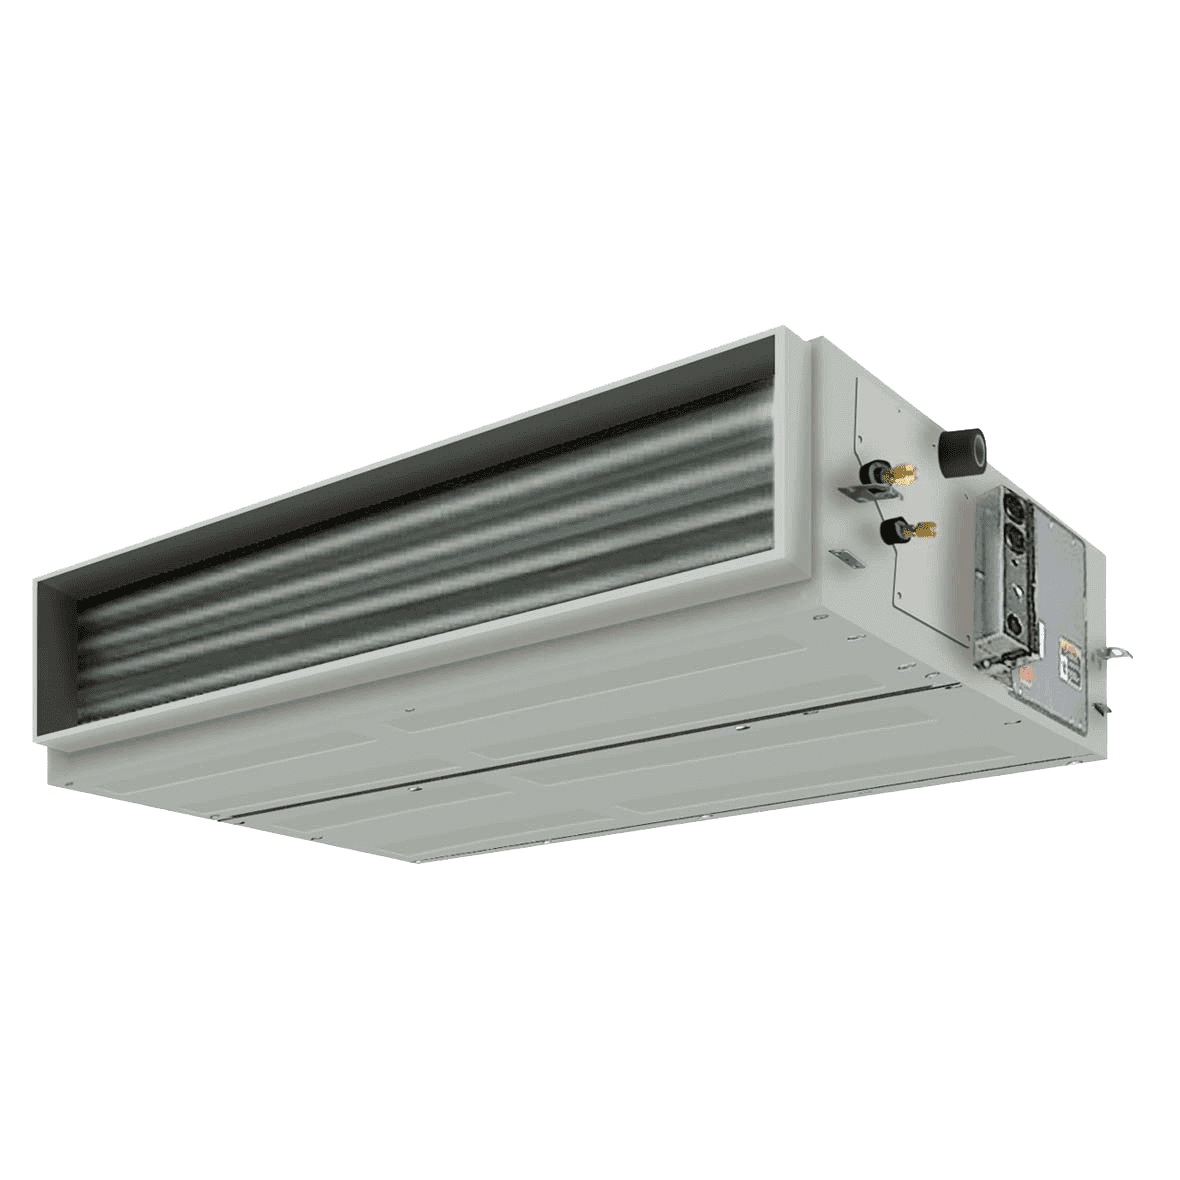 Toshiba Carrier Ducted Indoor Unit Model: RAVBT